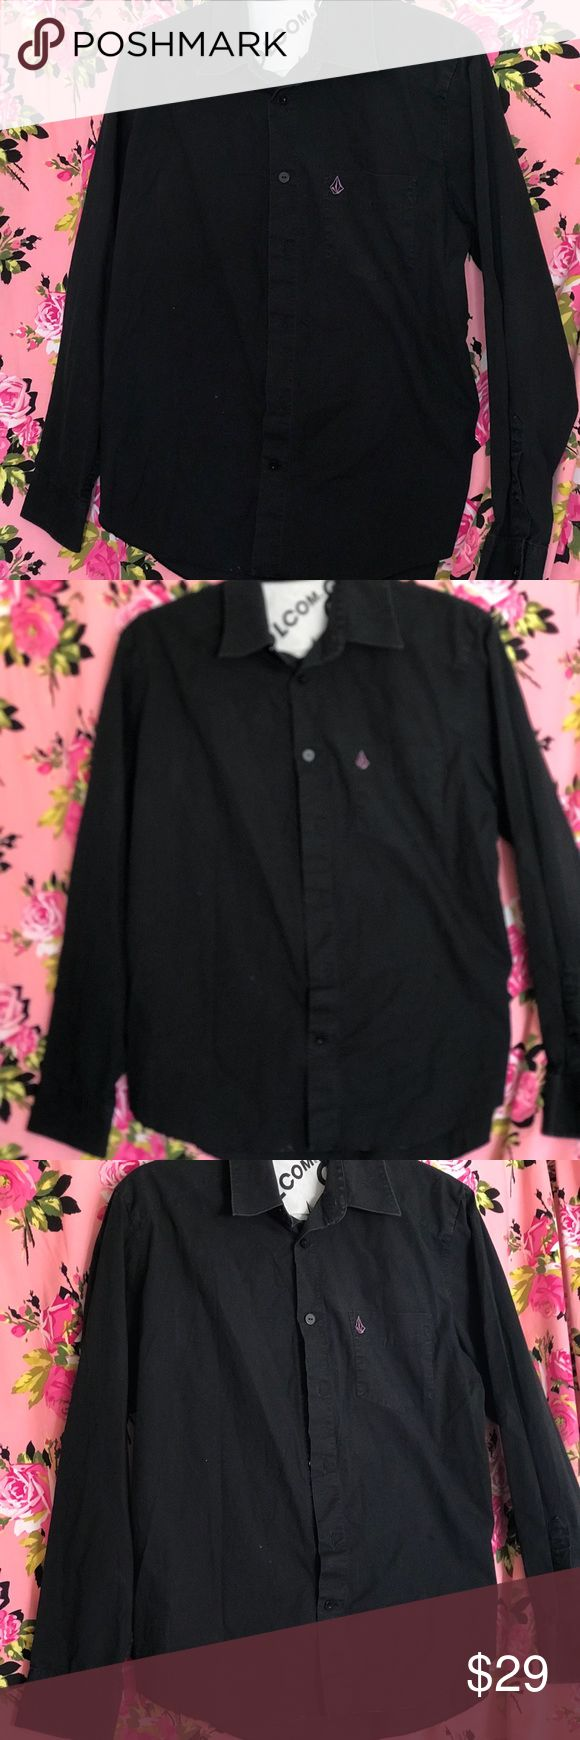 Black Volcom purple stone long sleeve button up L Boys large black long sleeve button up shirt dressy church wedding black tie Volcom with purple embroidered stone emblem collar style Volcom Shirts & Tops Button Down Shirts